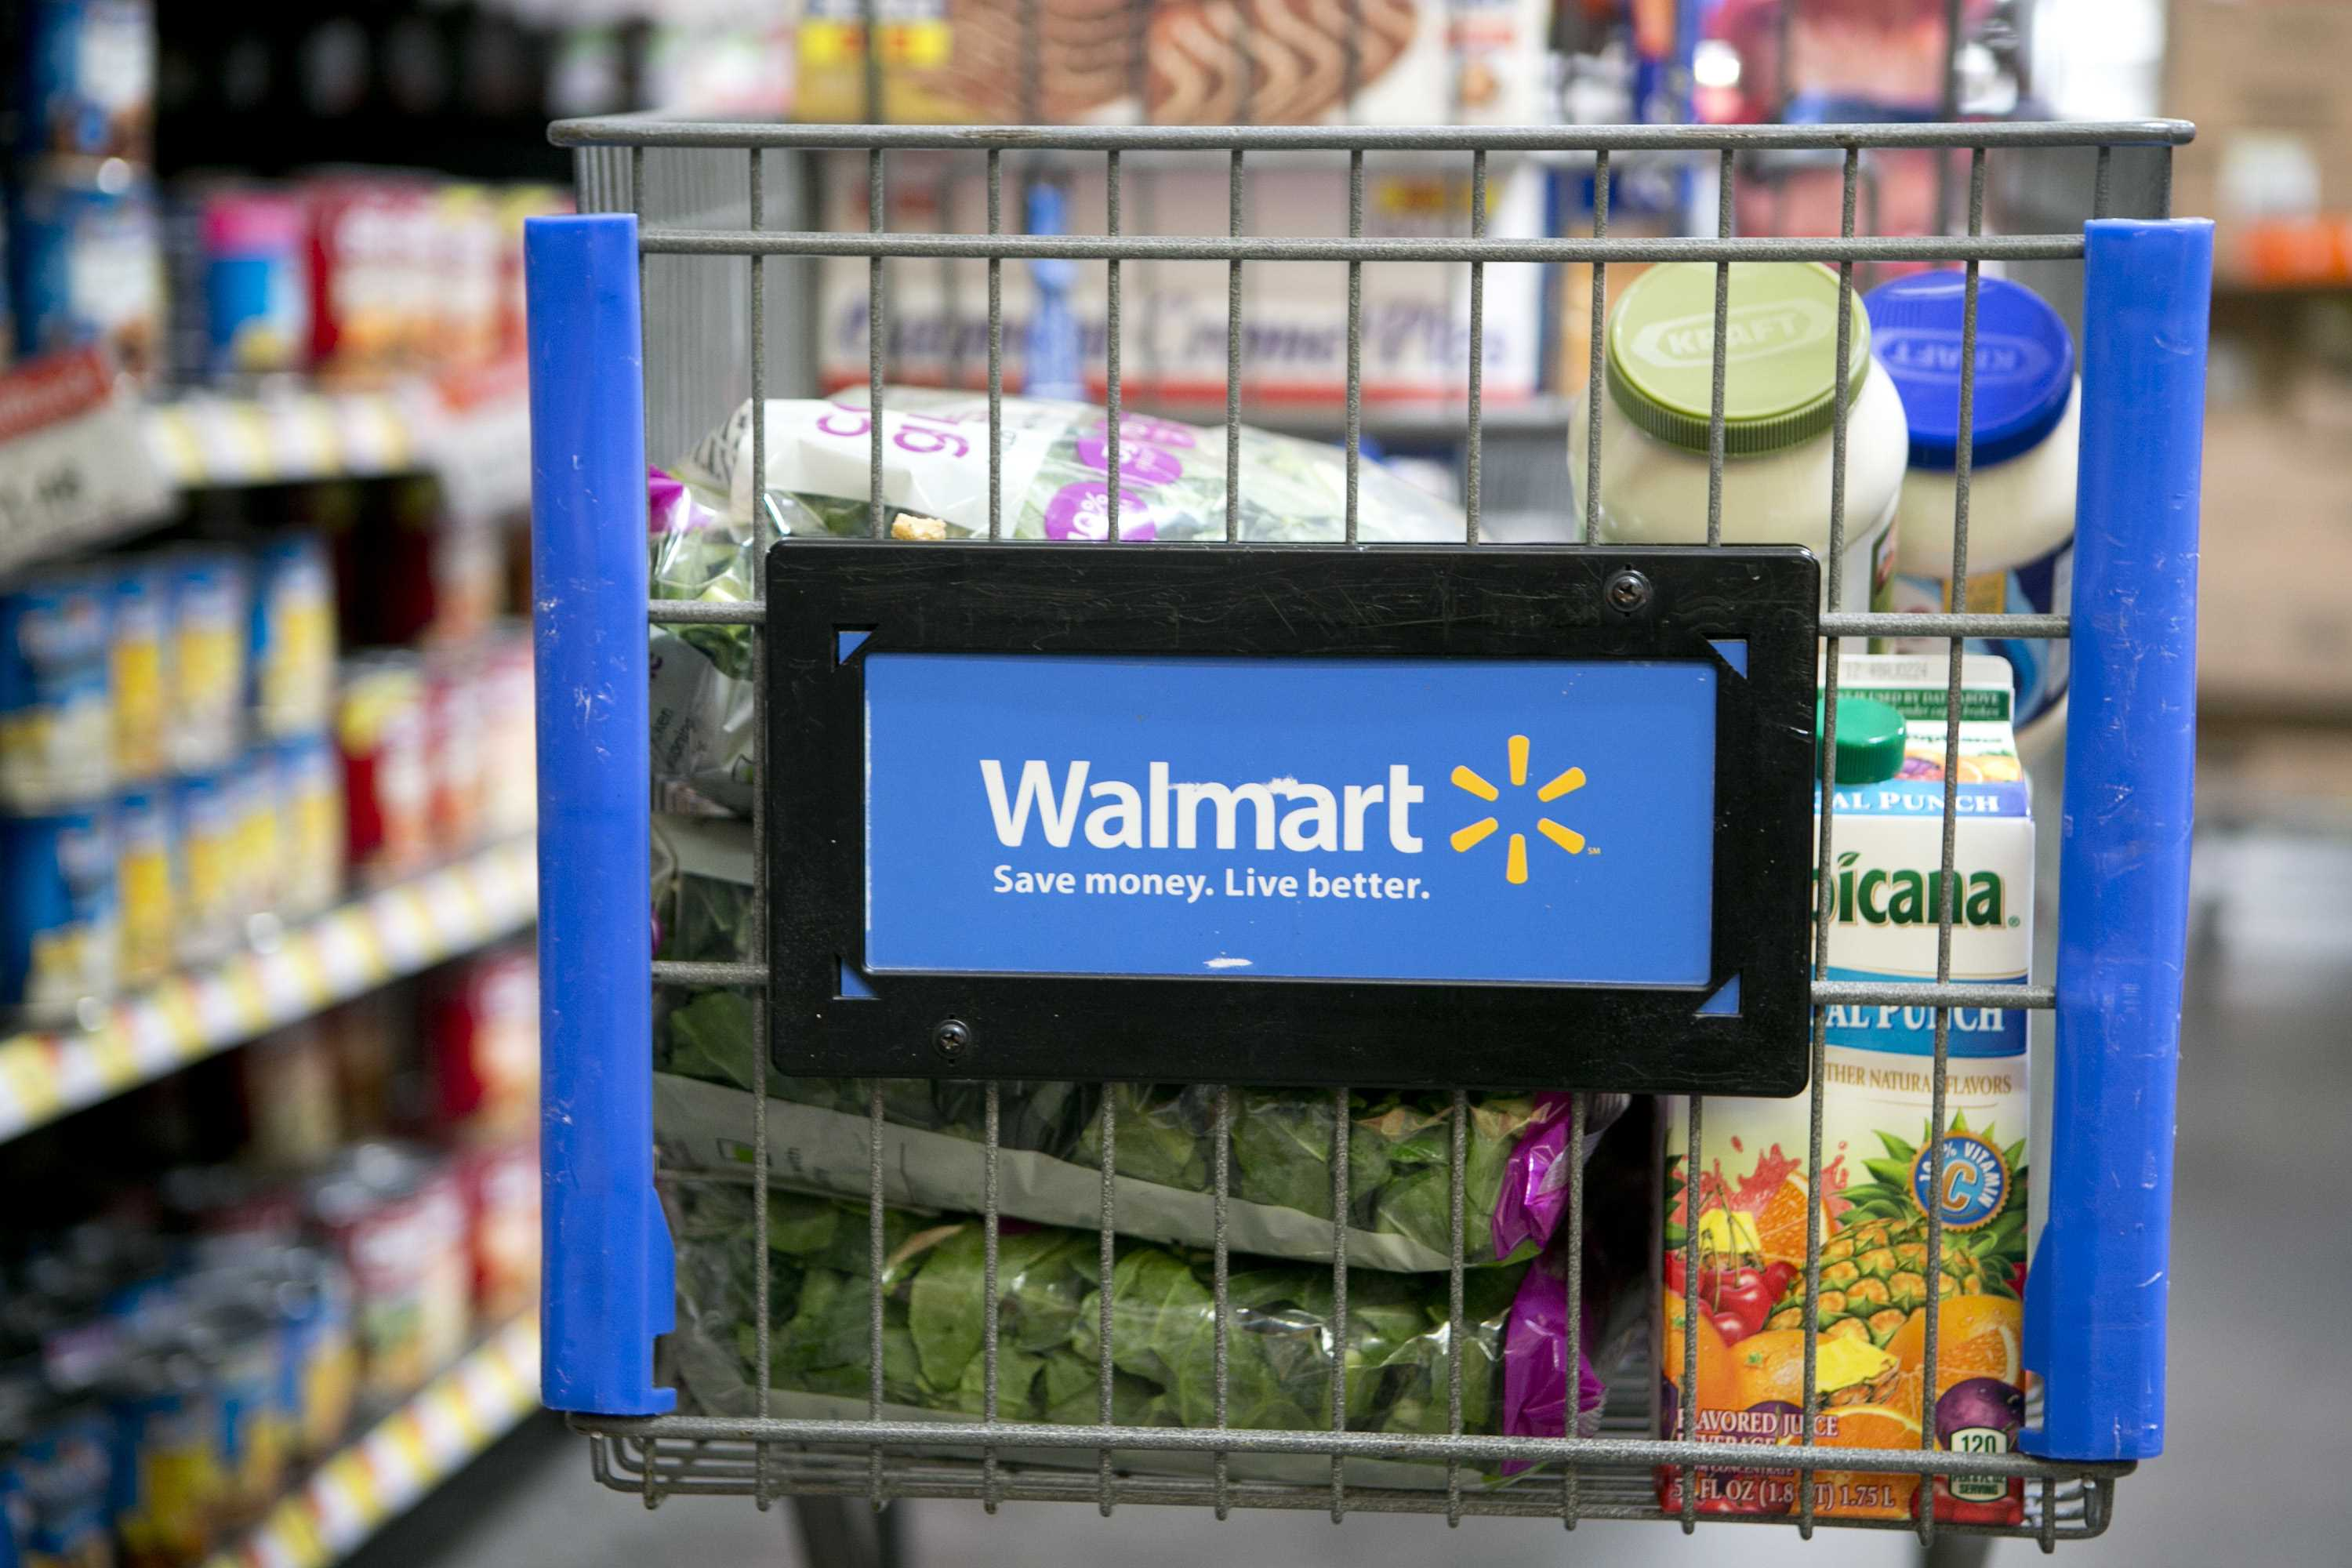 N.C. work comp law protects Wal-Mart in wrongful death suit